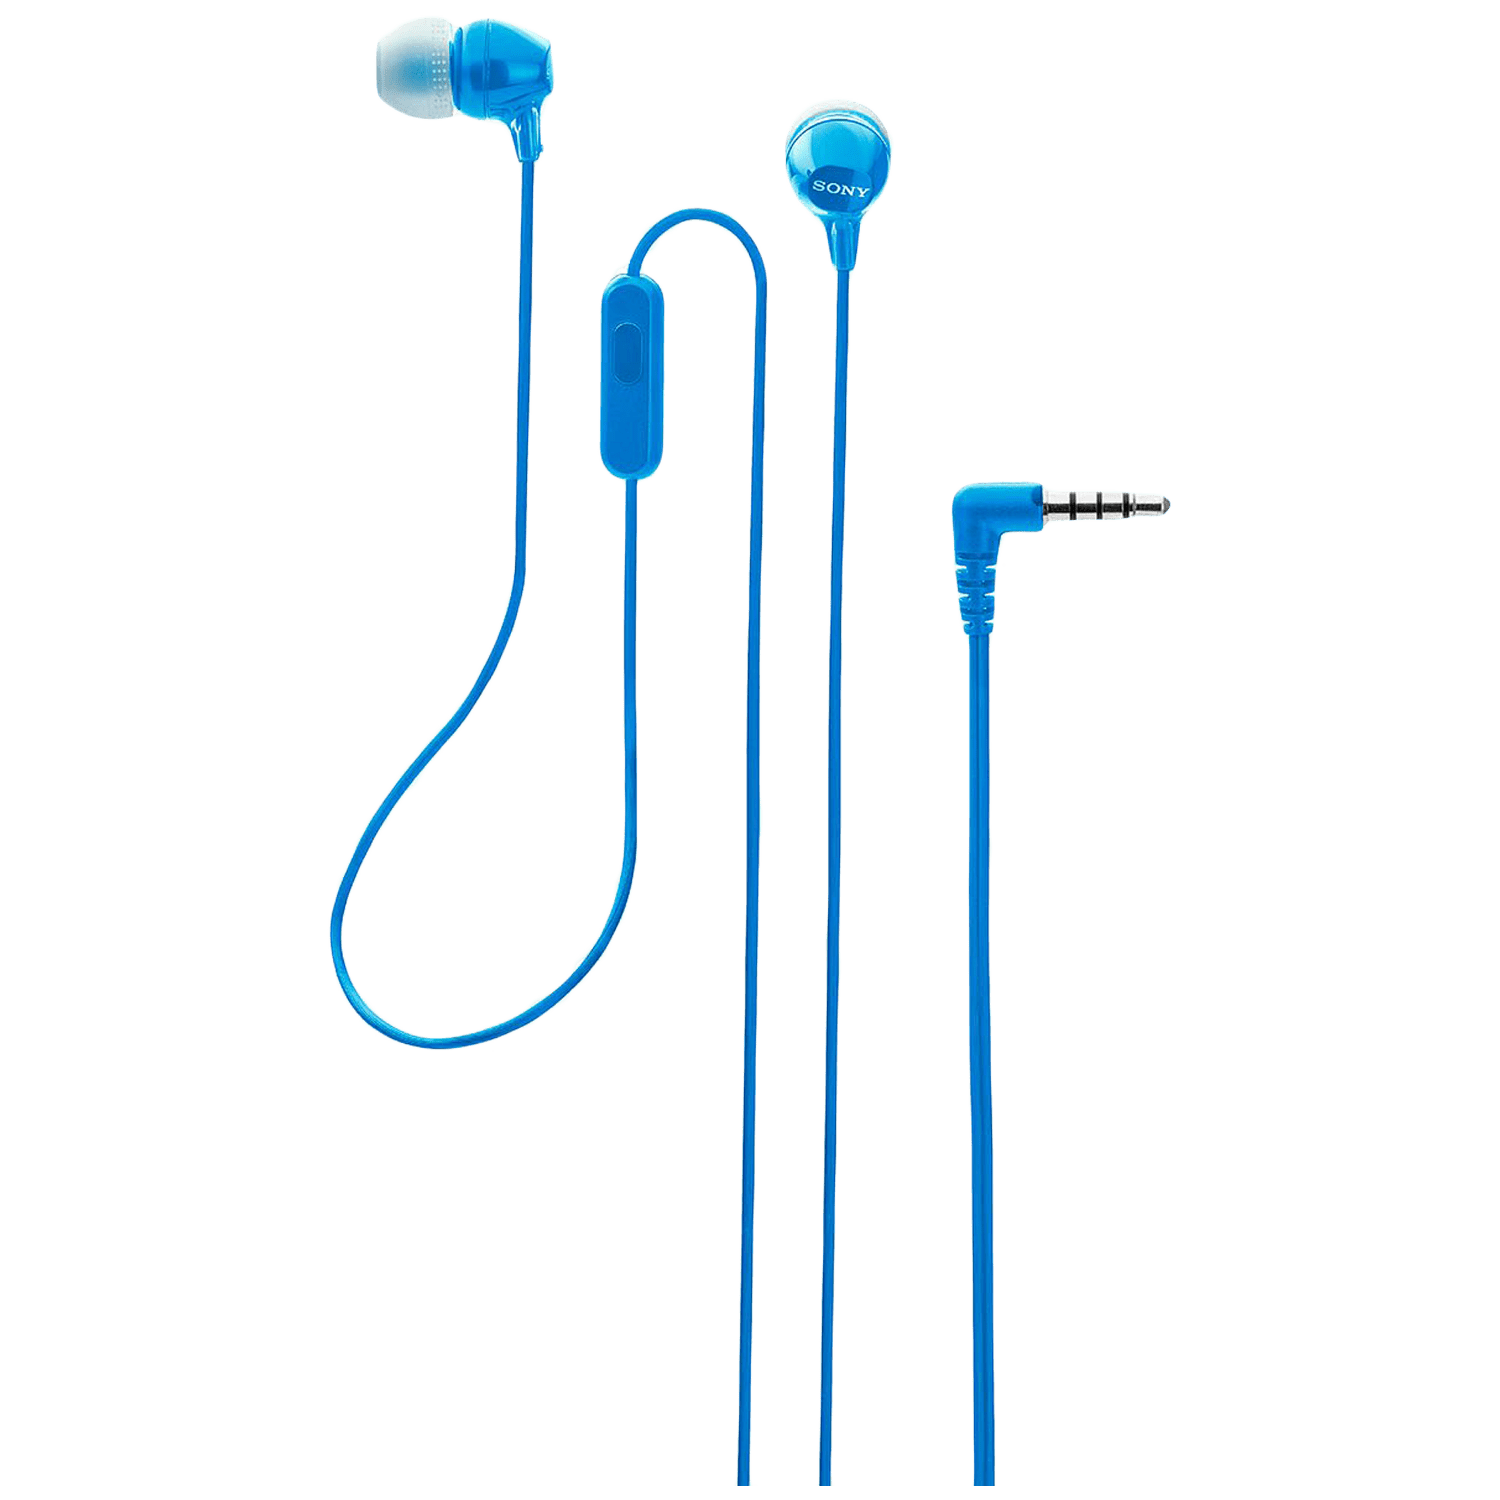 Sony In-Ear Wired Earphone with Mic (Crisp and Clear Sound, MDR-EX14AP, Blue)